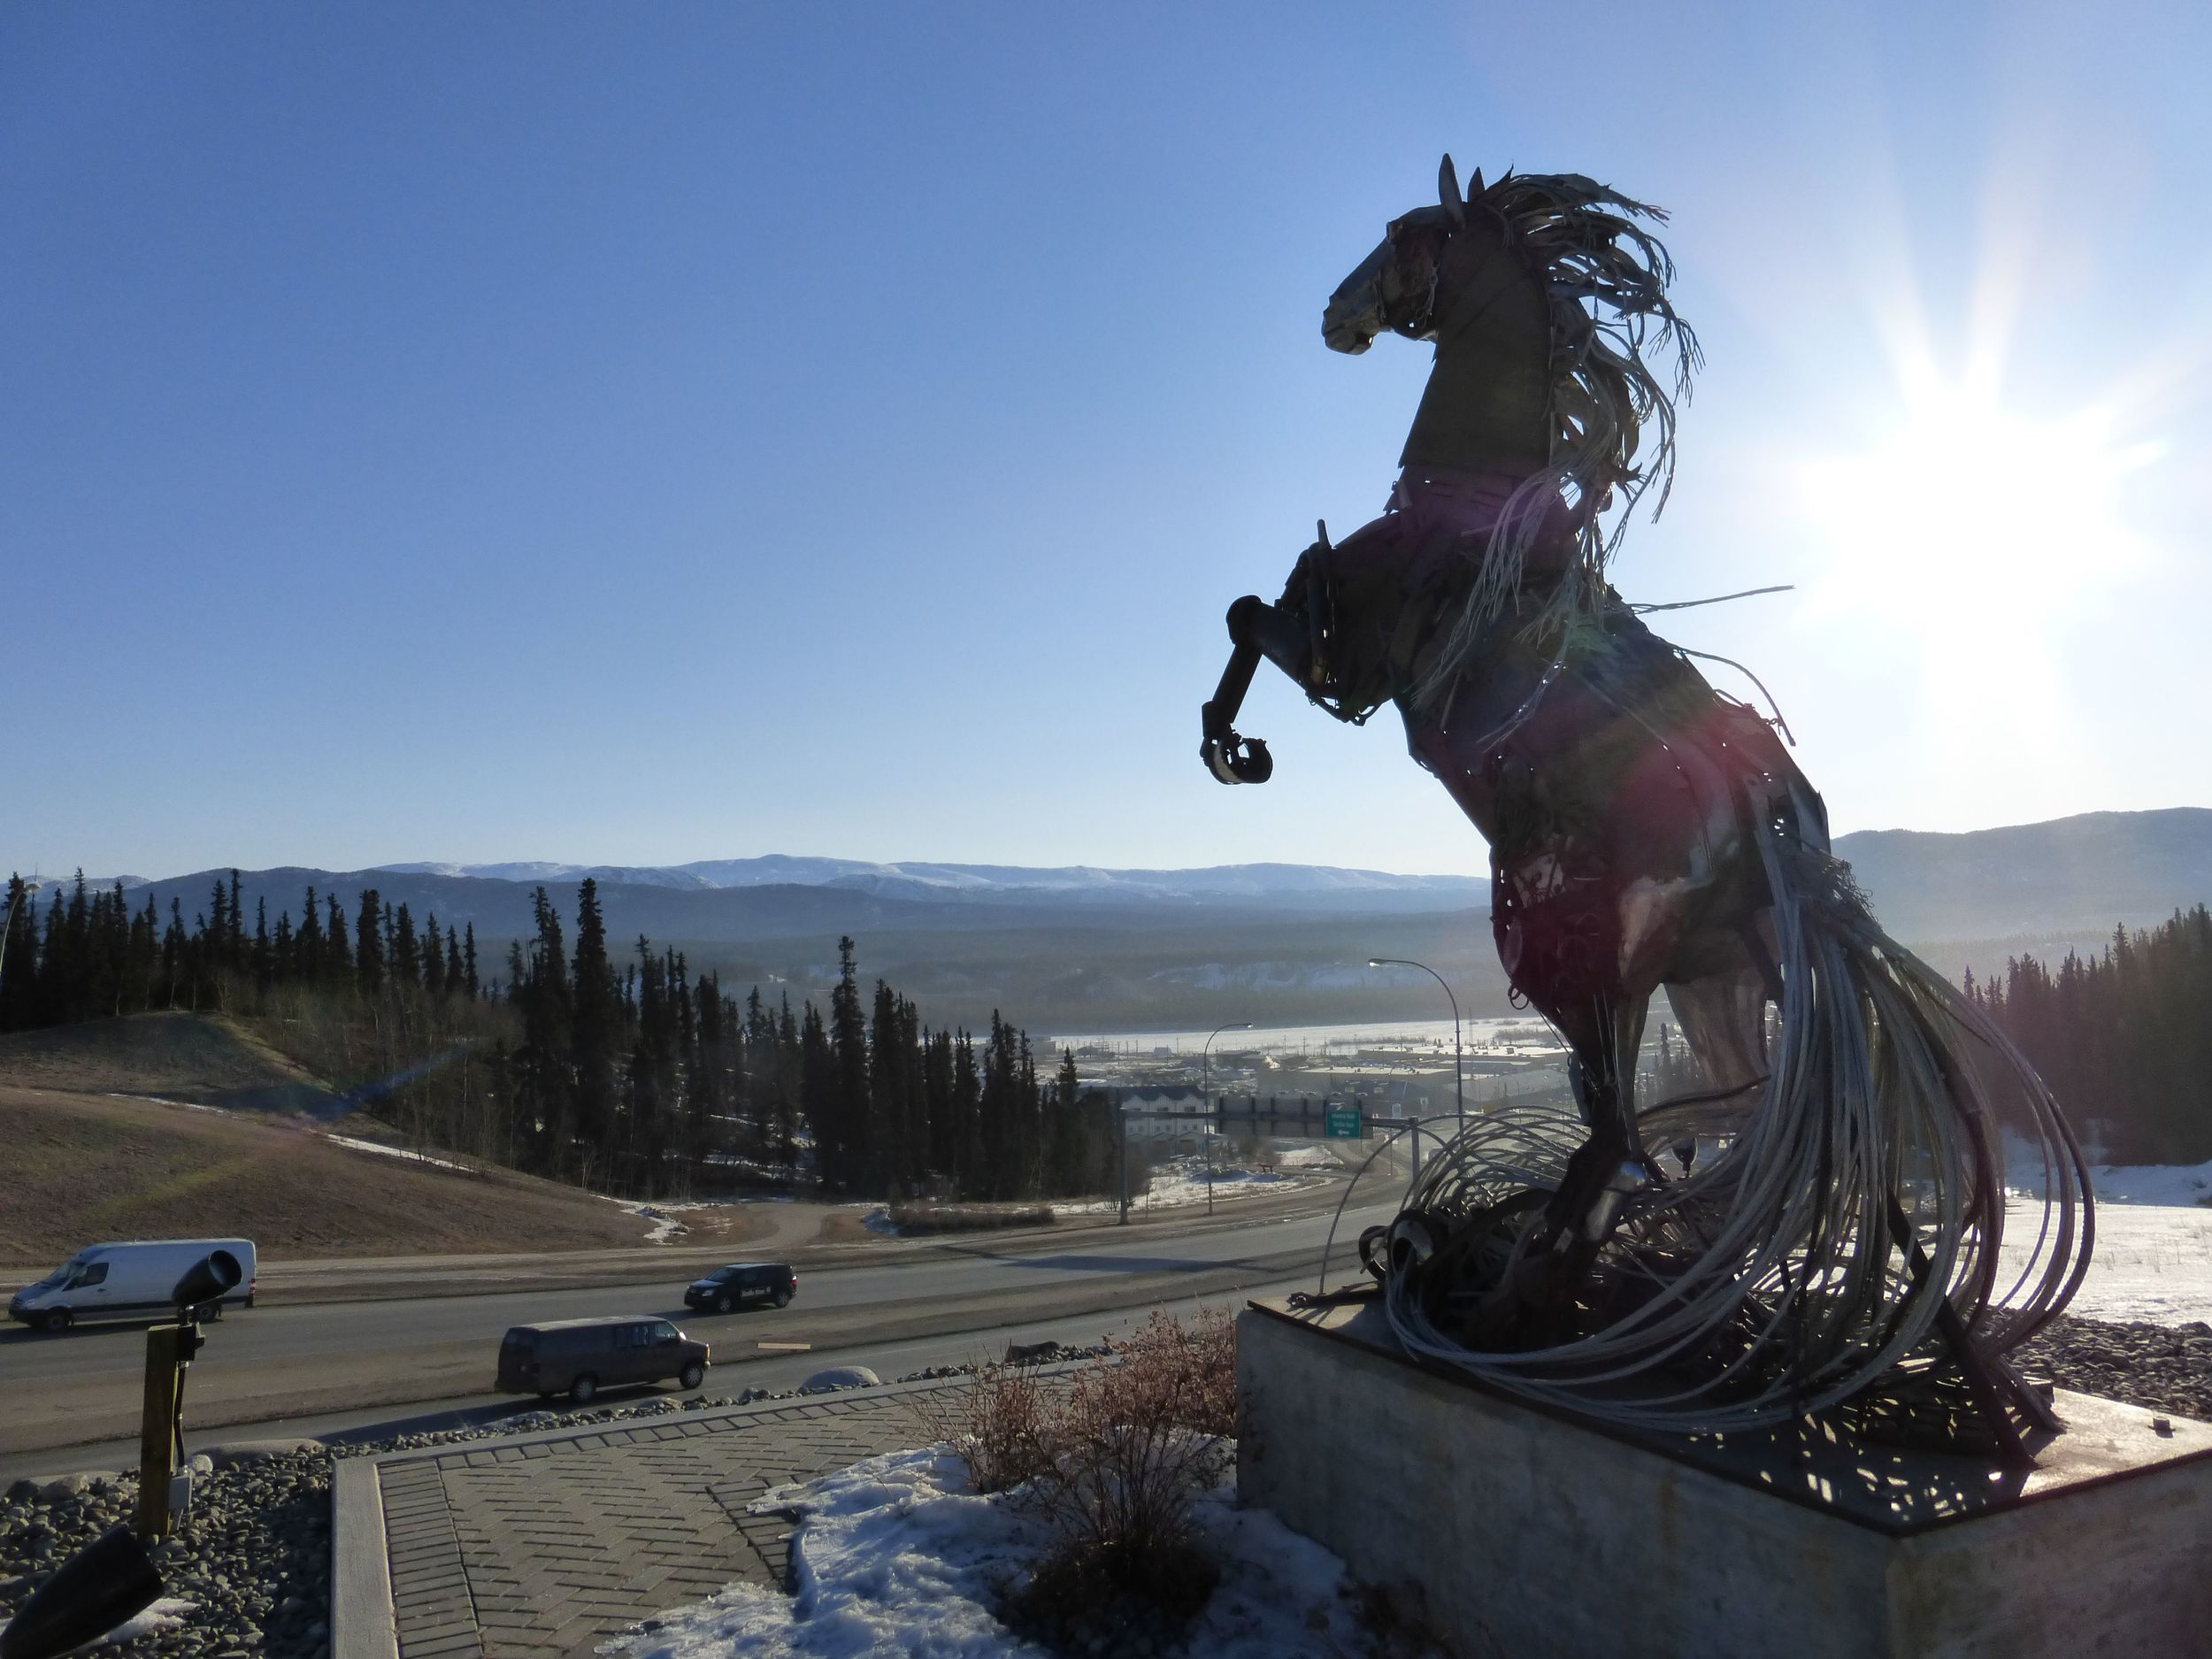 A statue at Whitehorse, built by combining random pieces donated by people from all around Yukon.